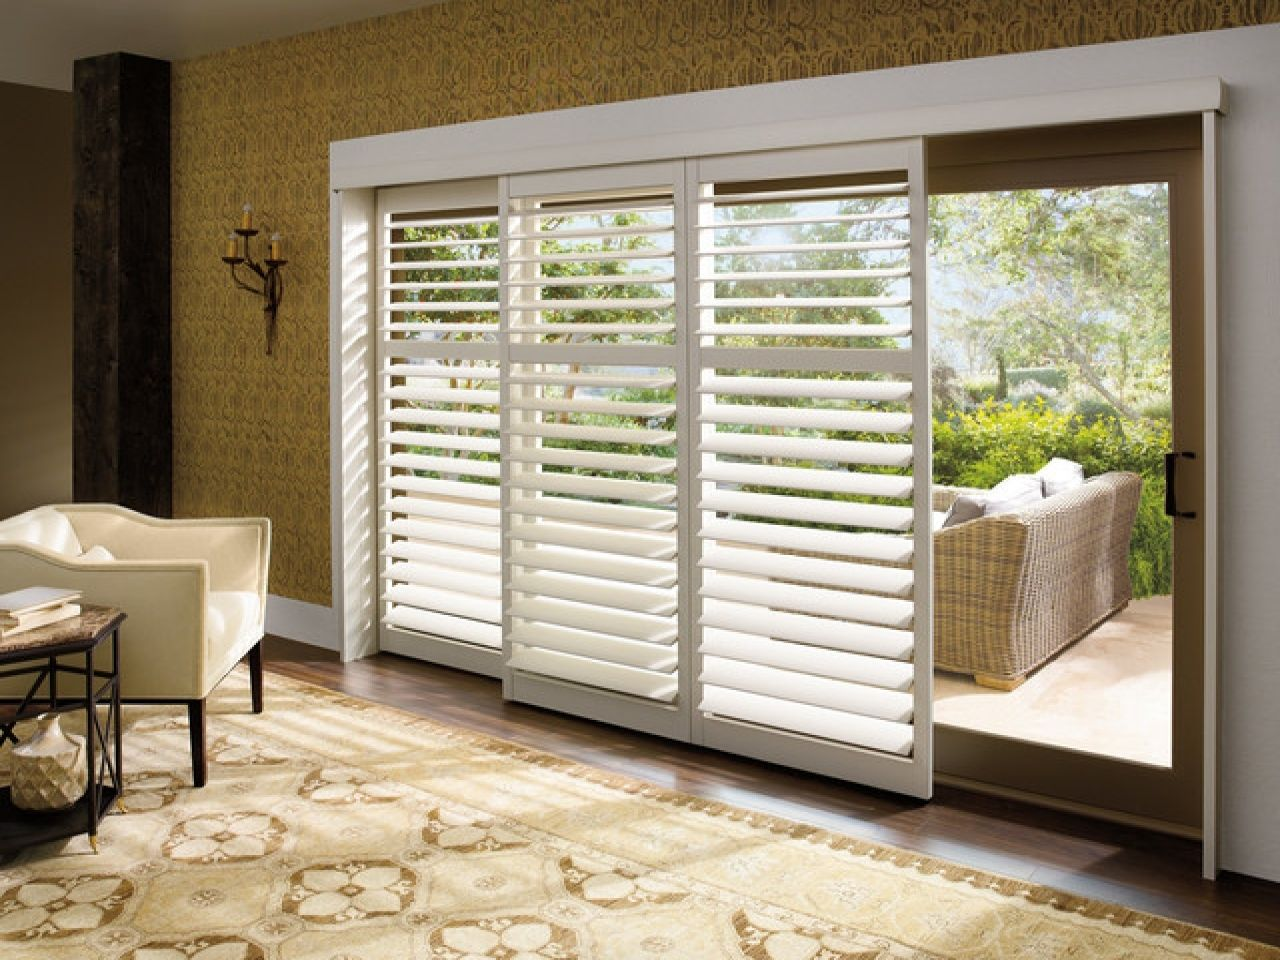 Sliding patio door shades bukuweb pinterest door